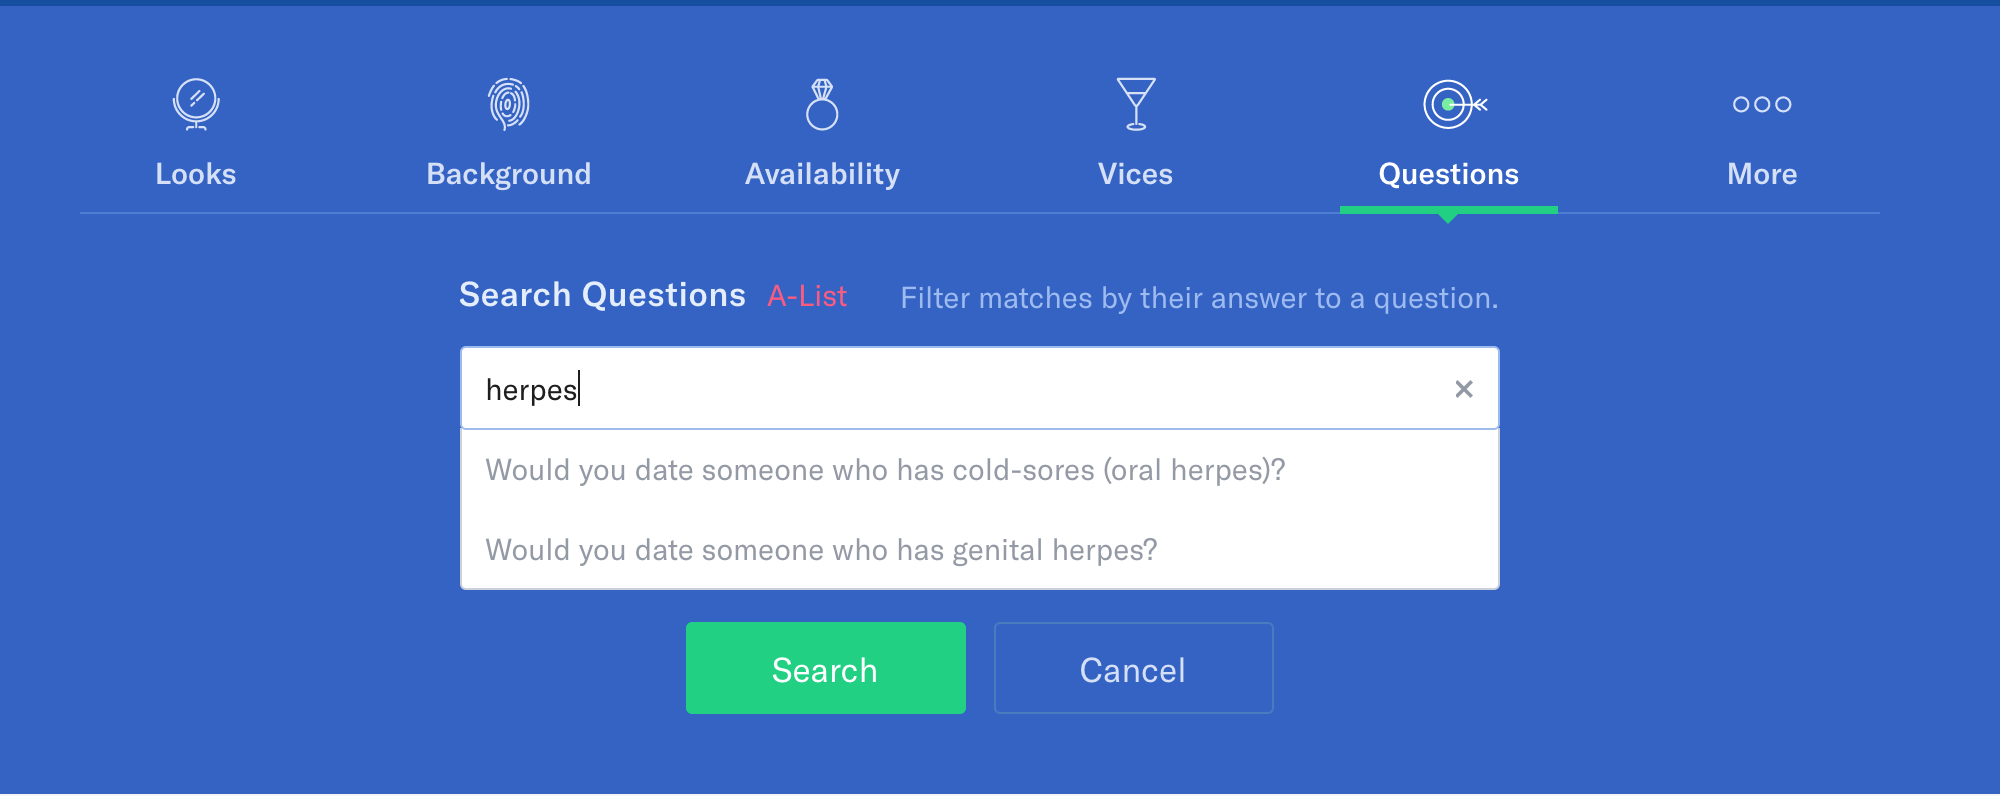 okcupid questions list